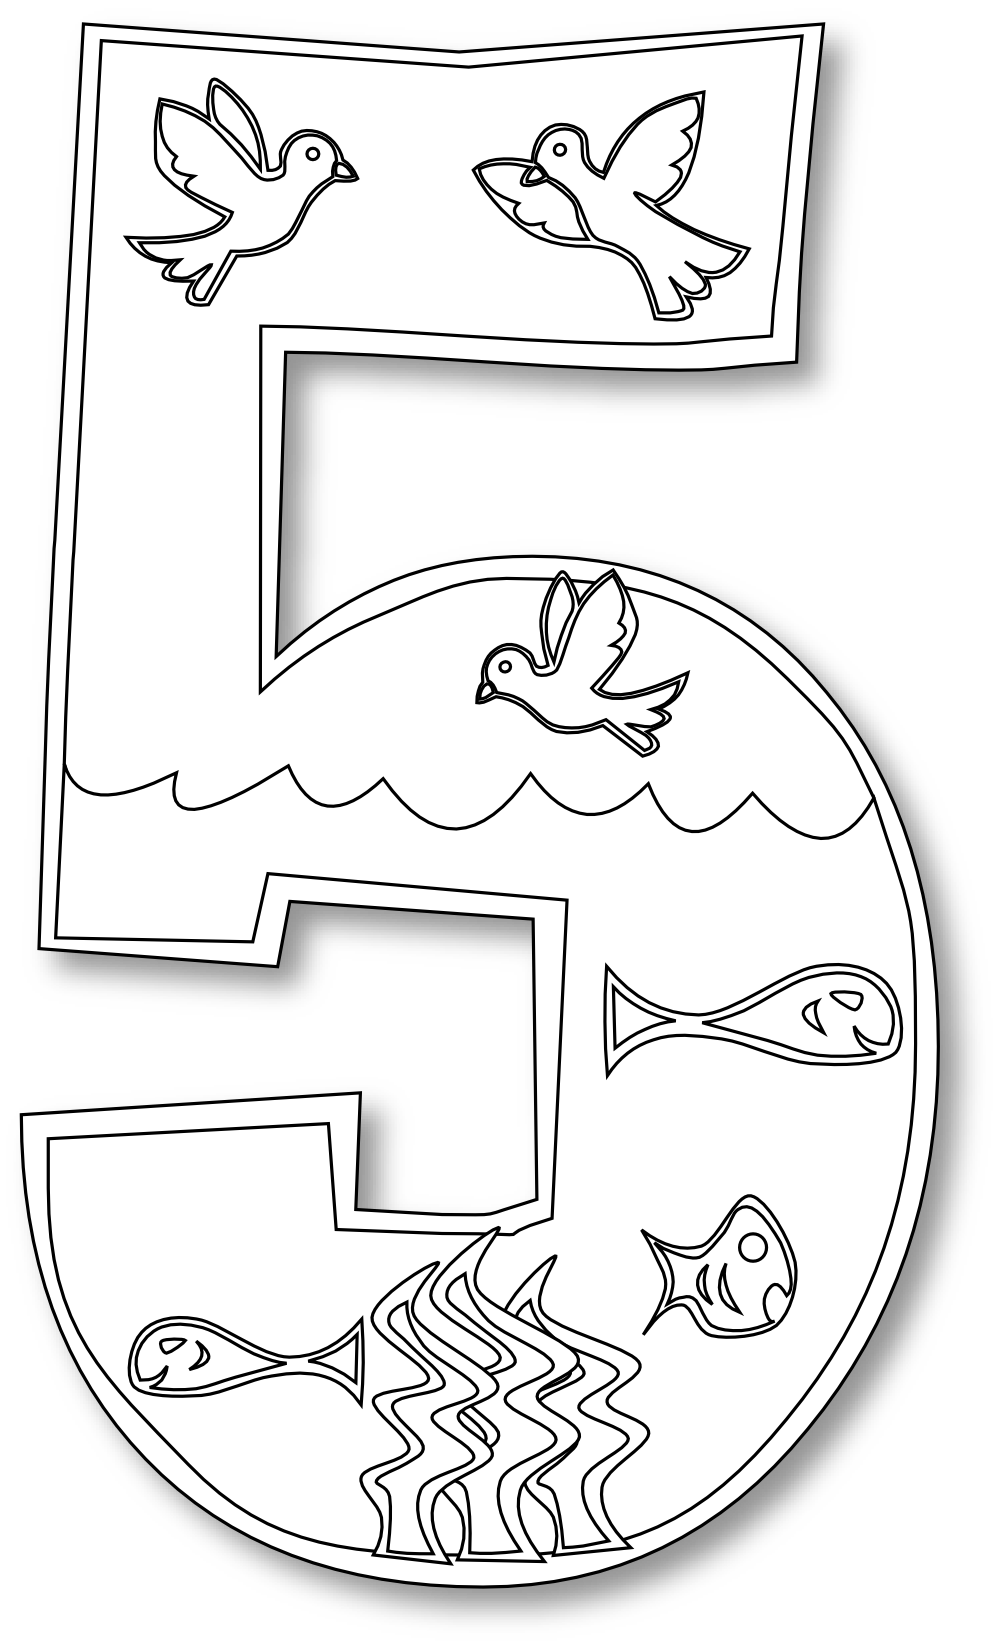 Creation clipart sequence. Coloring pages for children